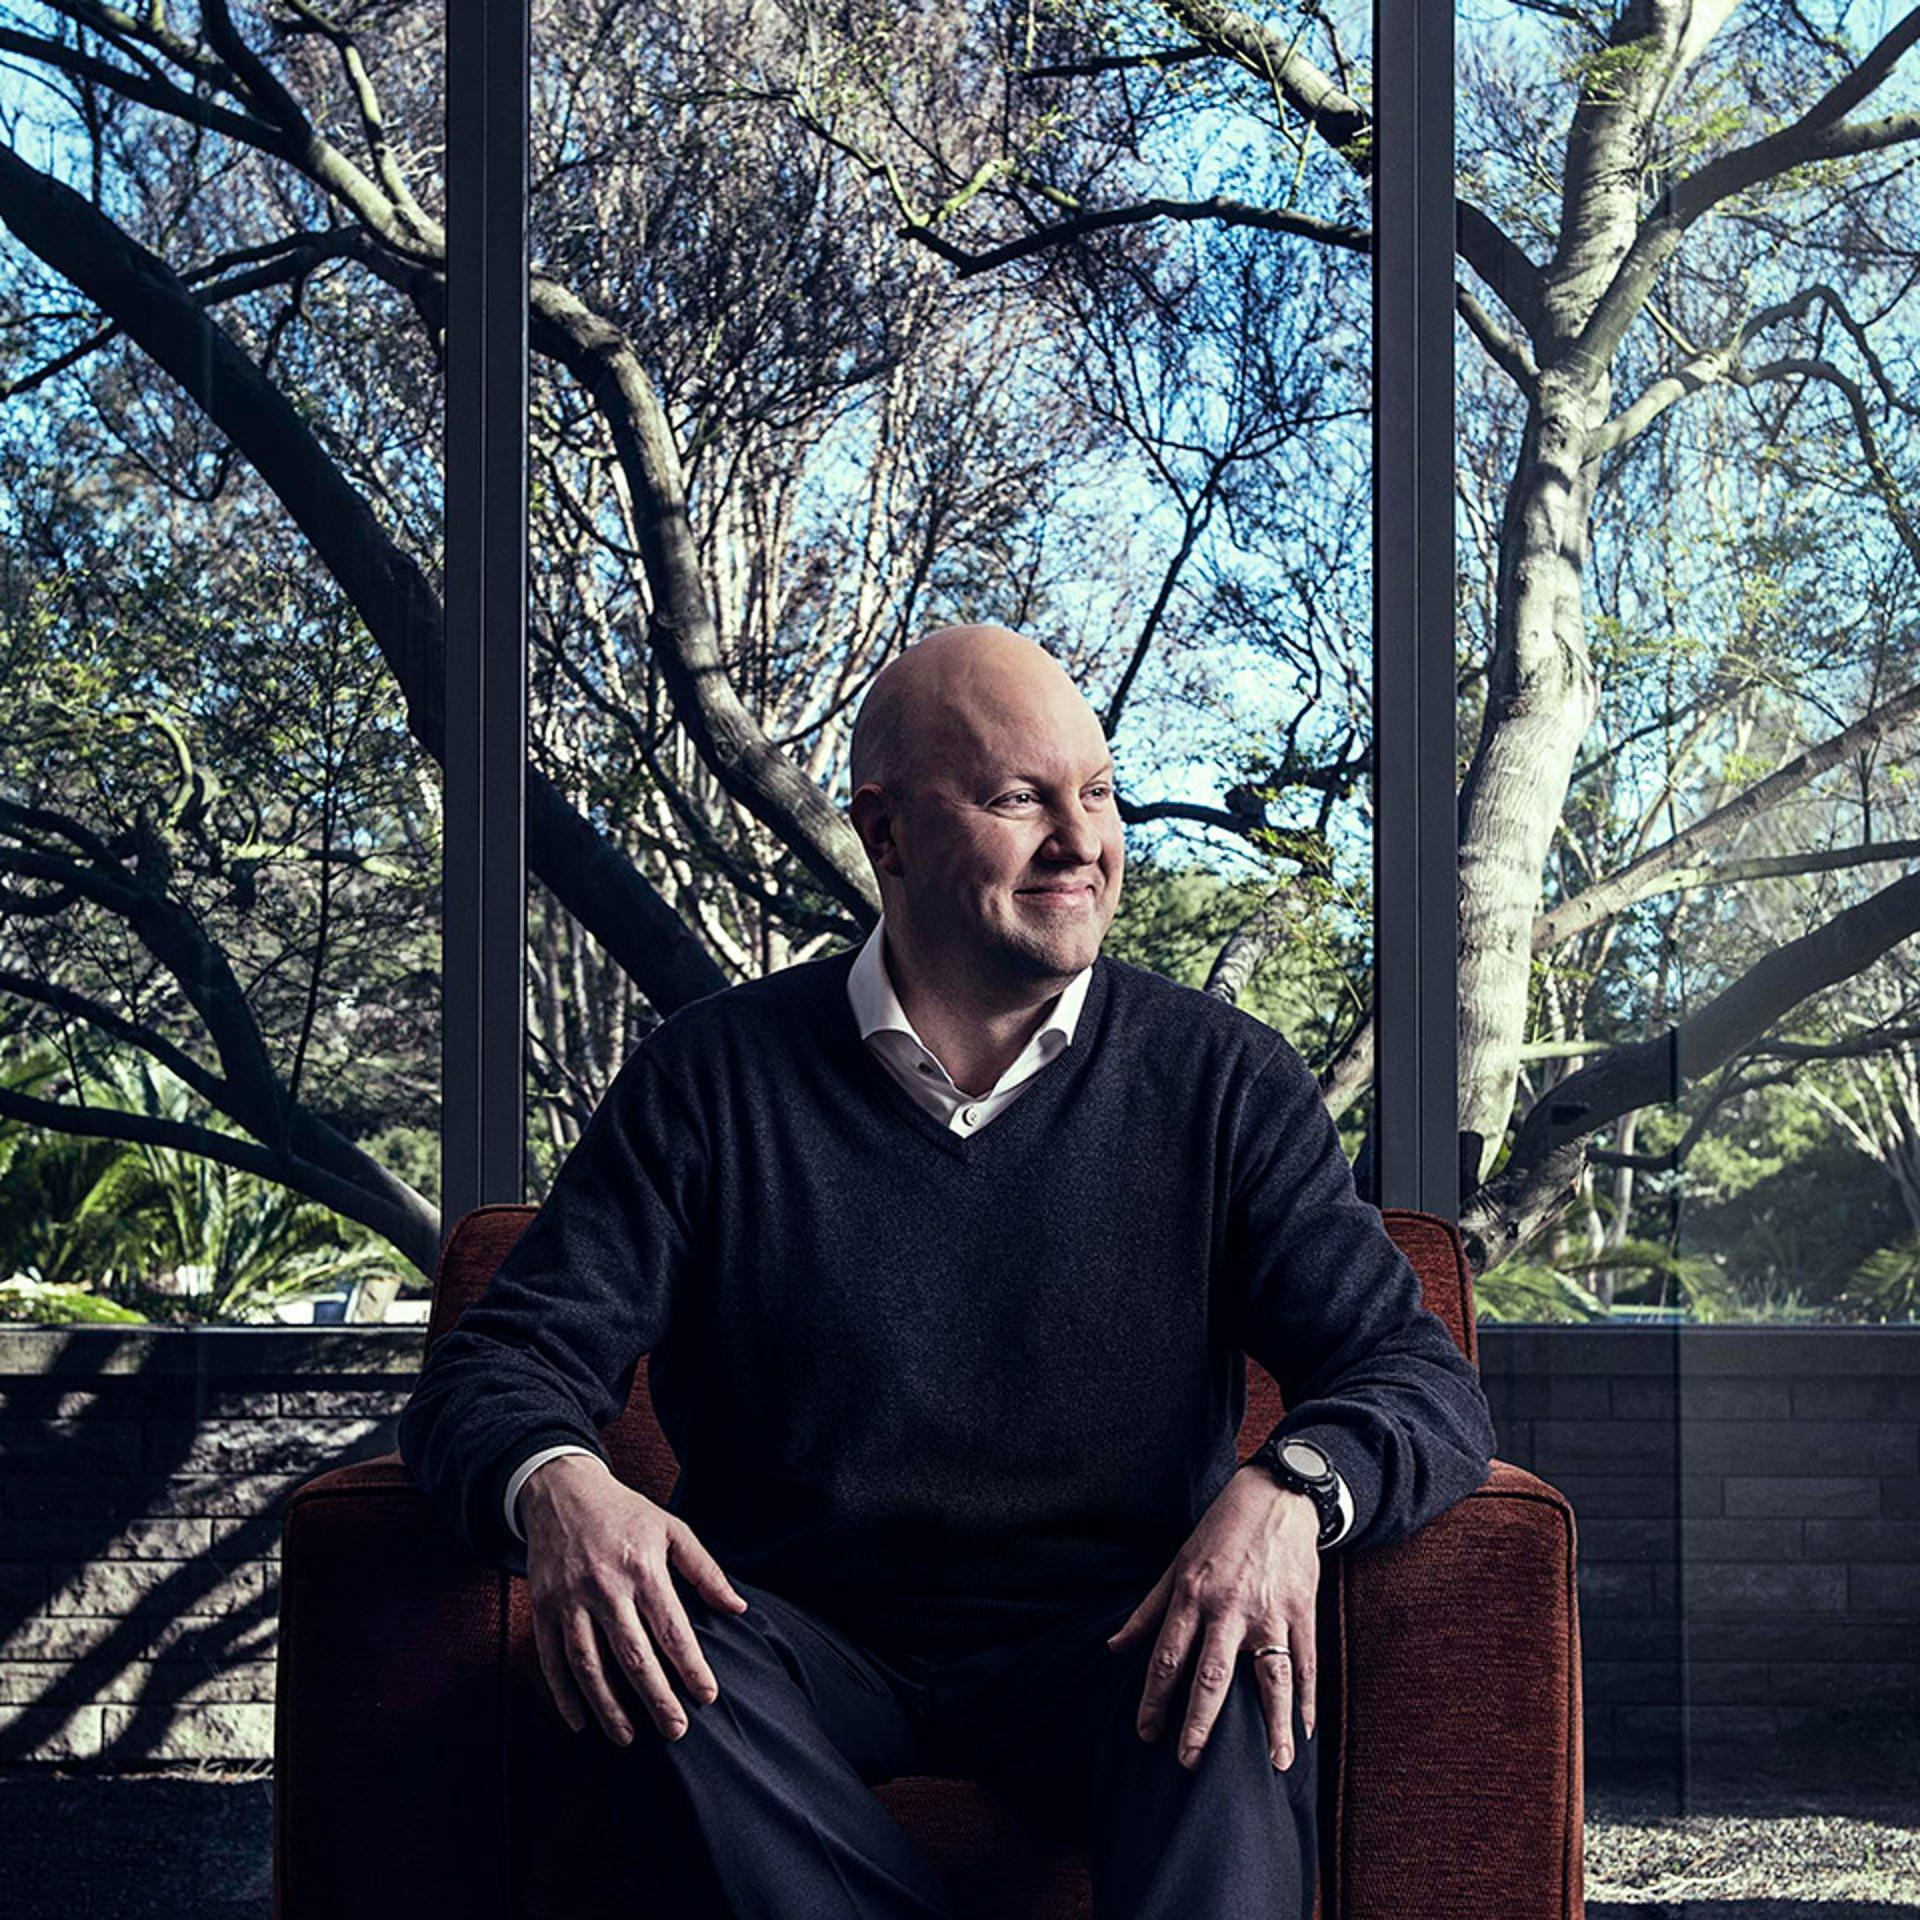 Marc Andreessen of Andreessen Horowitz seated in front of a window.